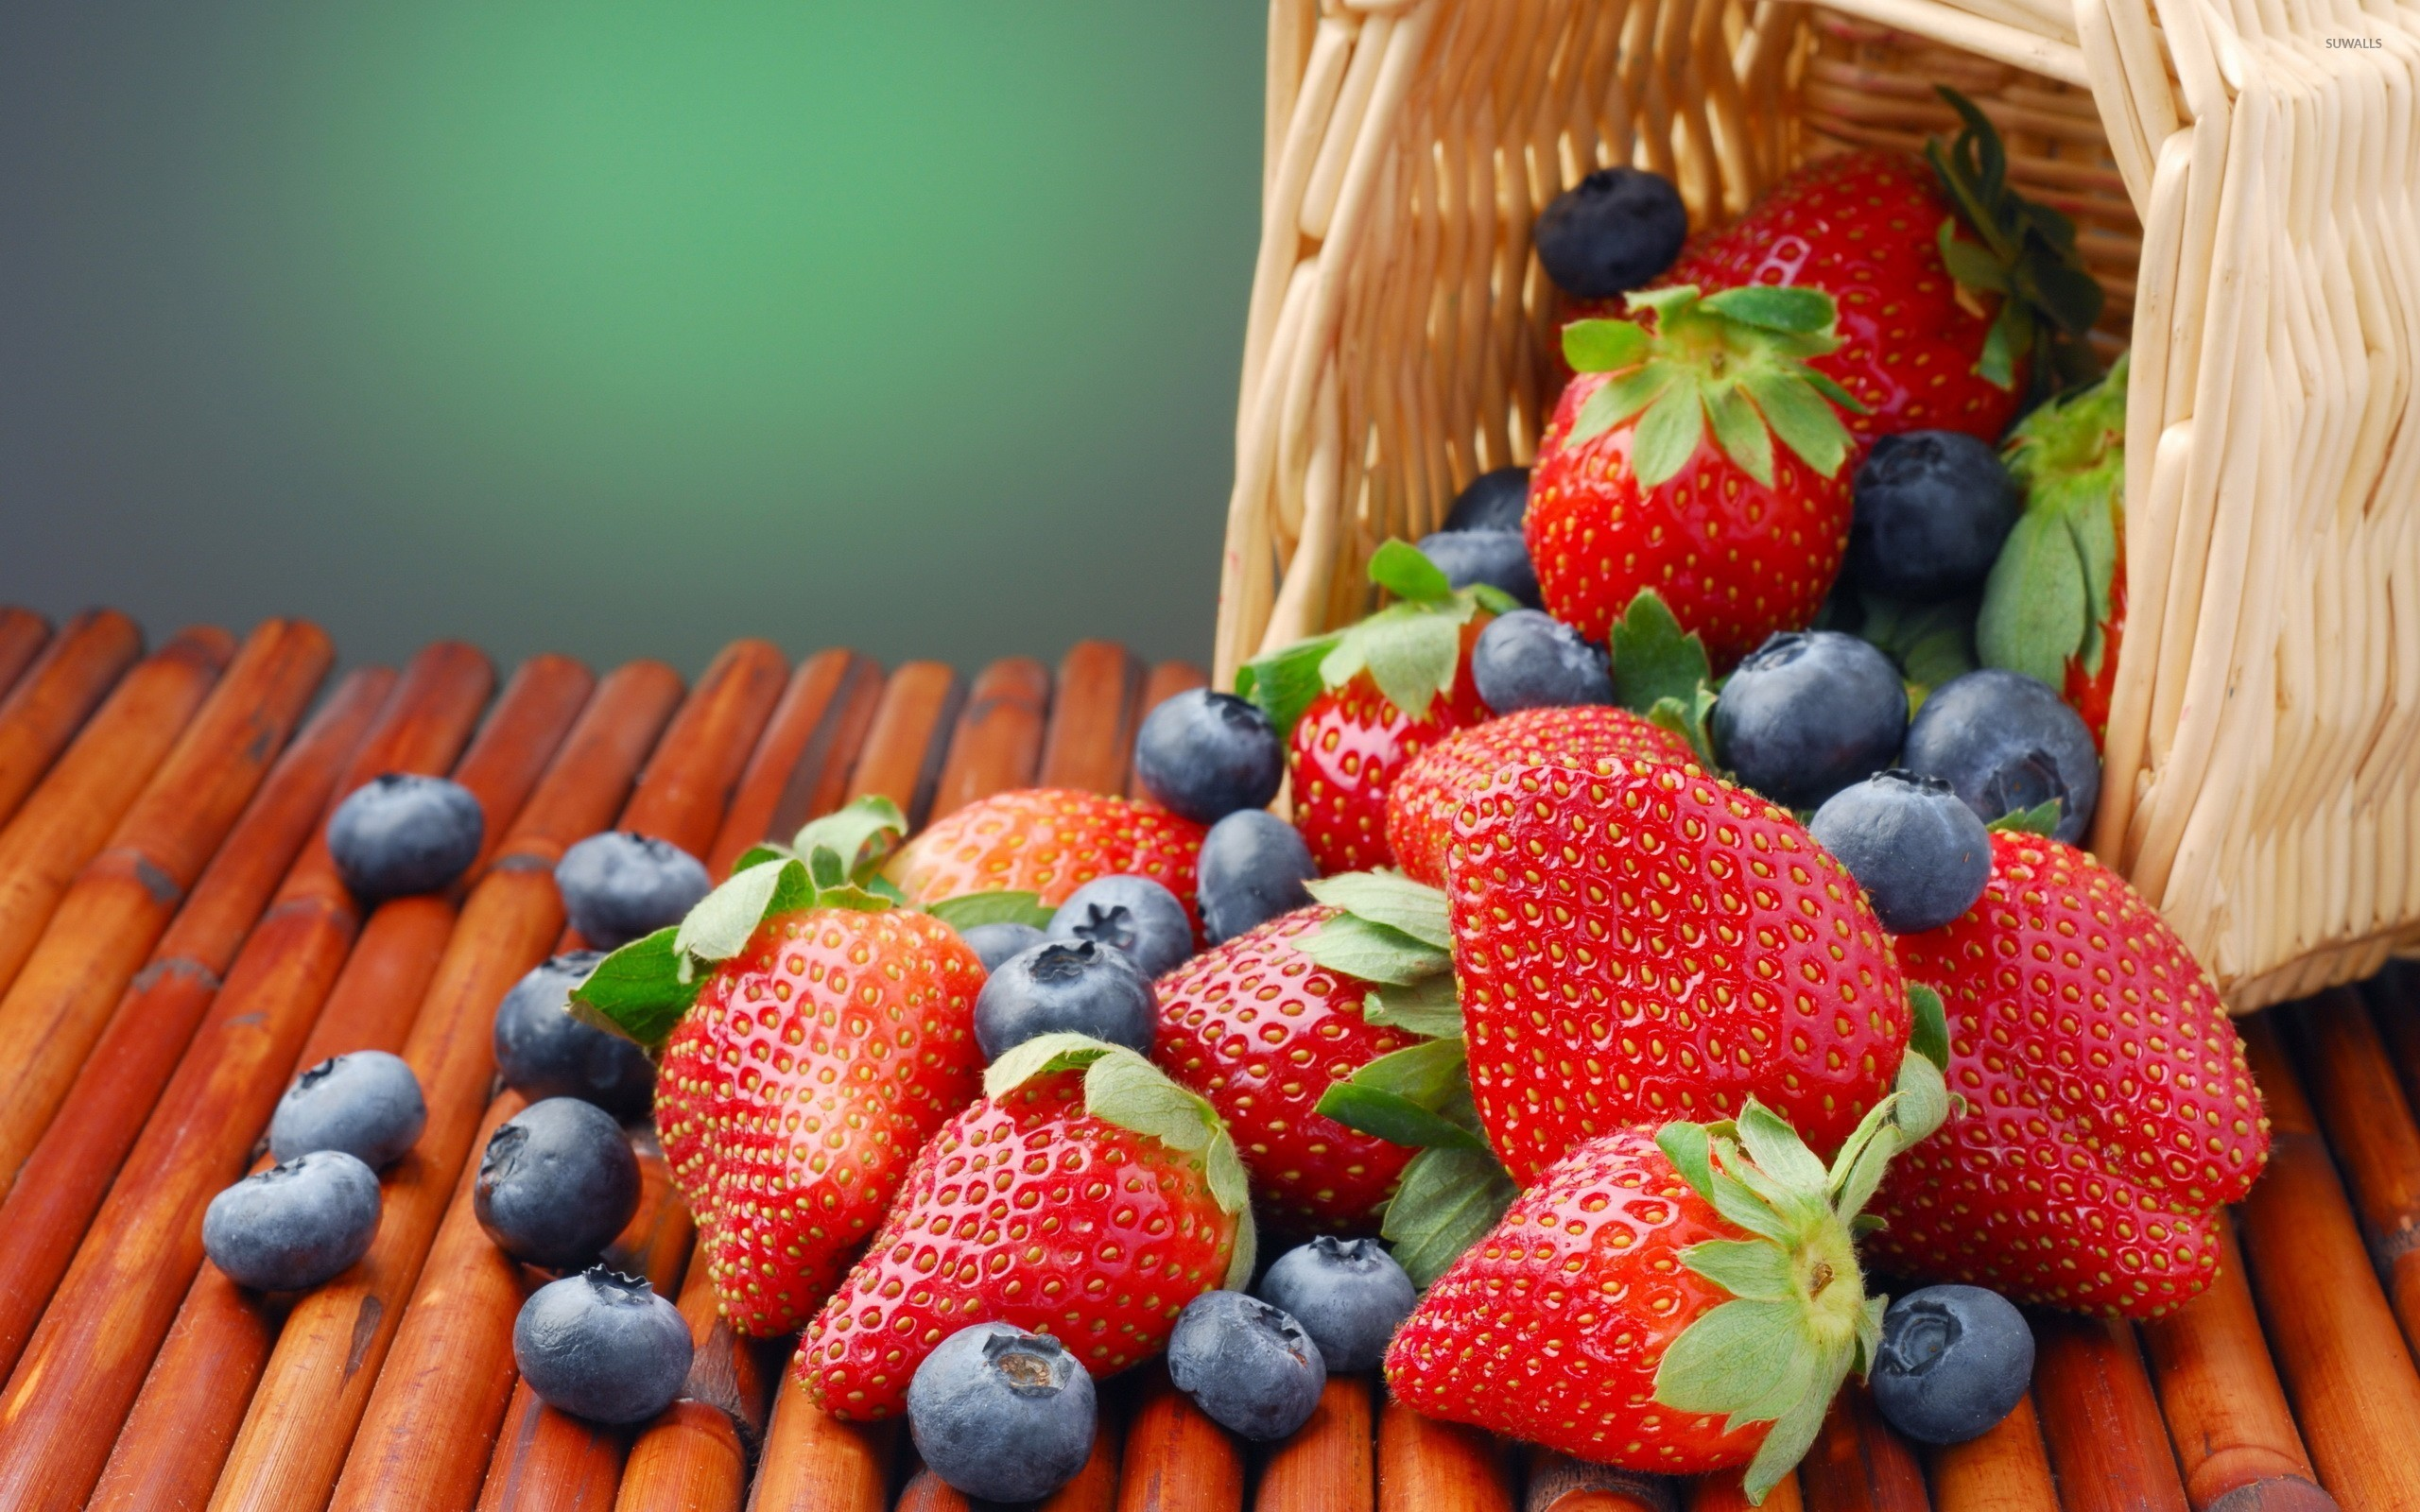 2560x1600 Strawberries and blueberries wallpaper